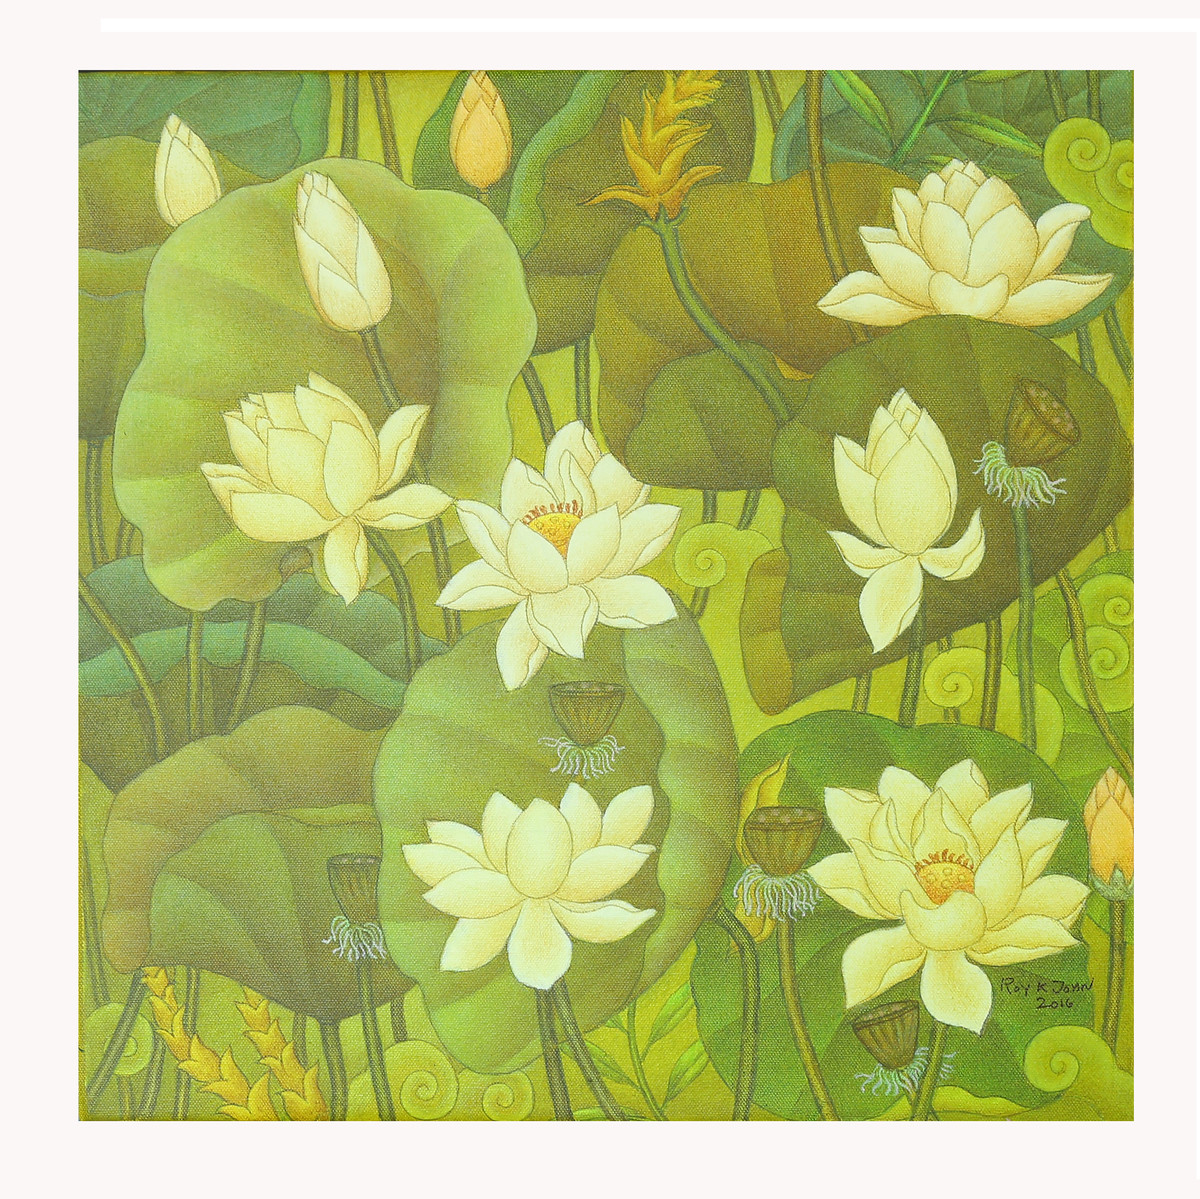 Lotus series by artist roy k john art deco painting mojarto lotus series by roy k john art deco painting acrylic on canvas beige izmirmasajfo